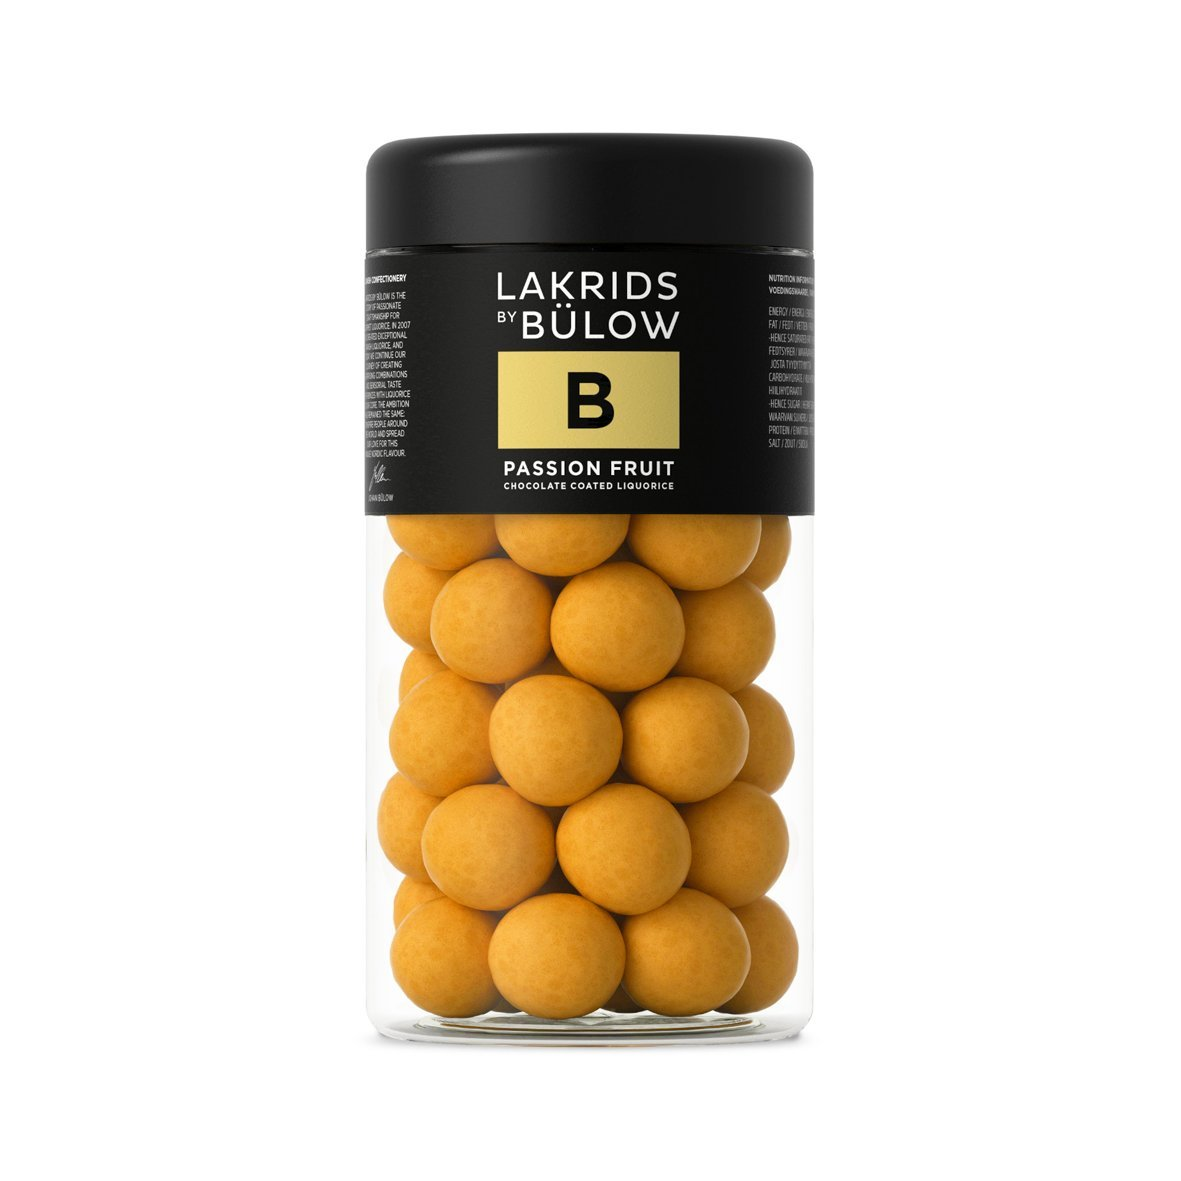 LAKRIDS BY BÜLOW B – PASSION FRUIT